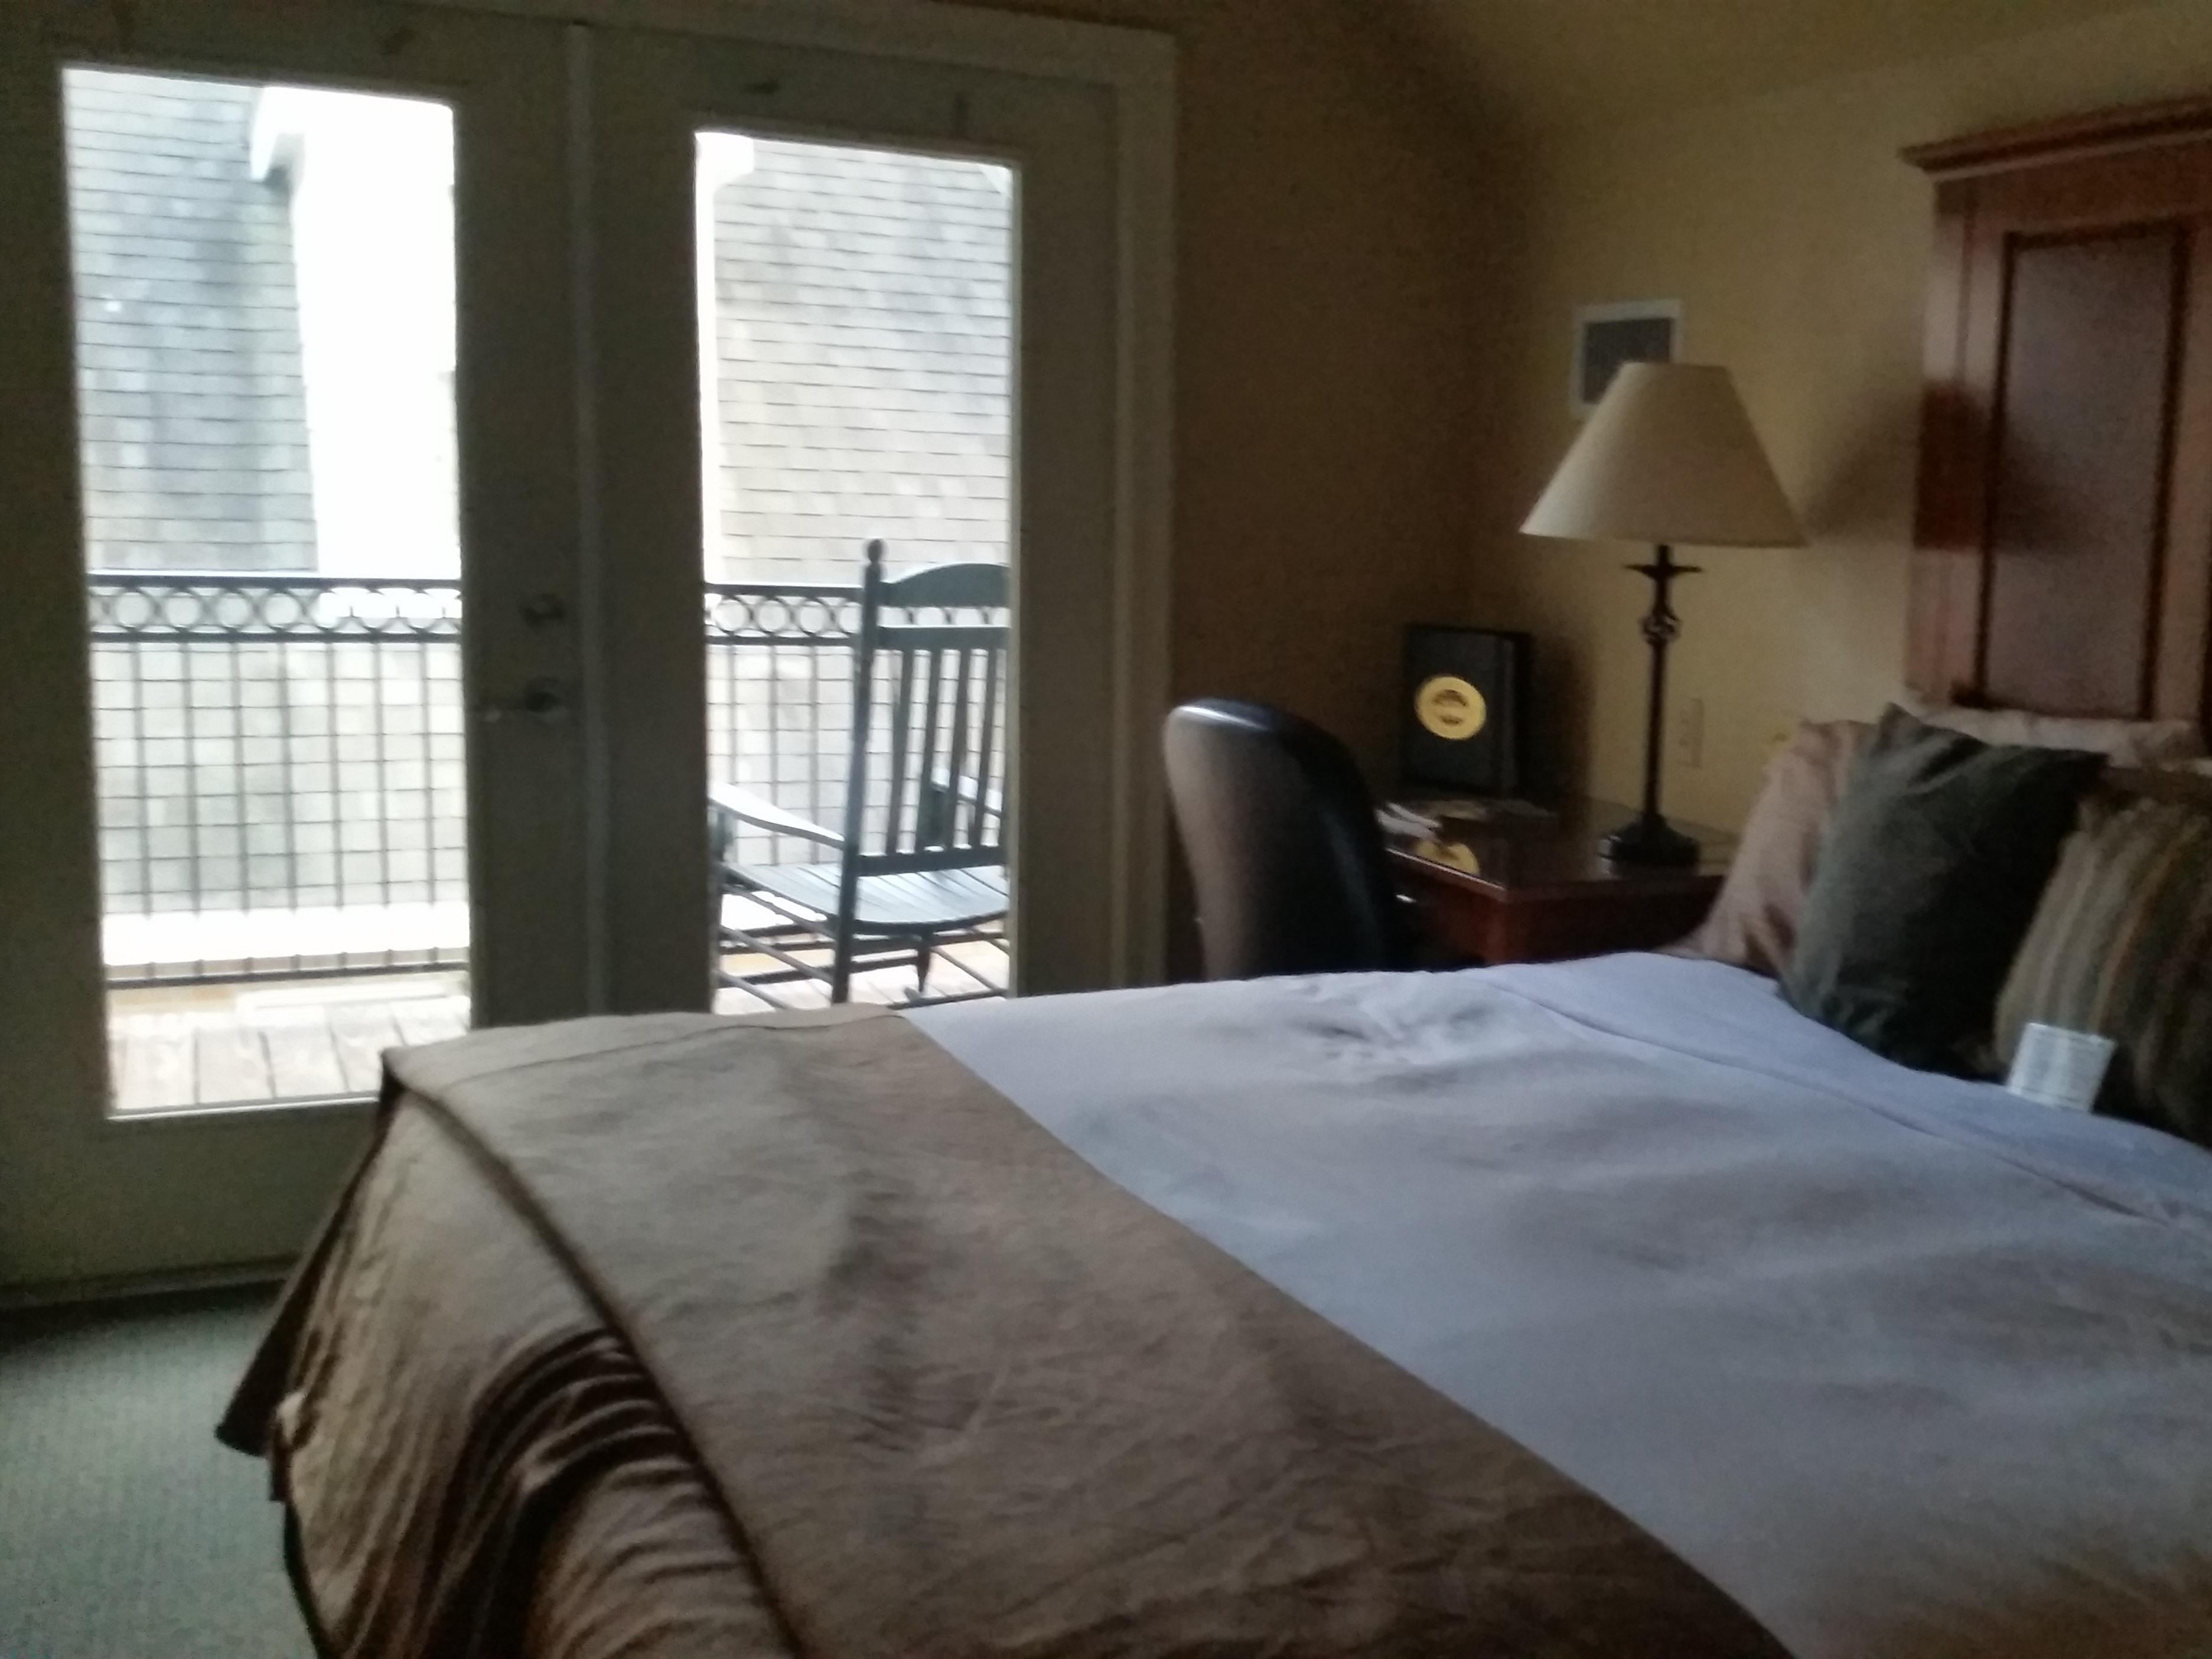 King-Private Bathroom-Standard-Balcony-107 Carriage House